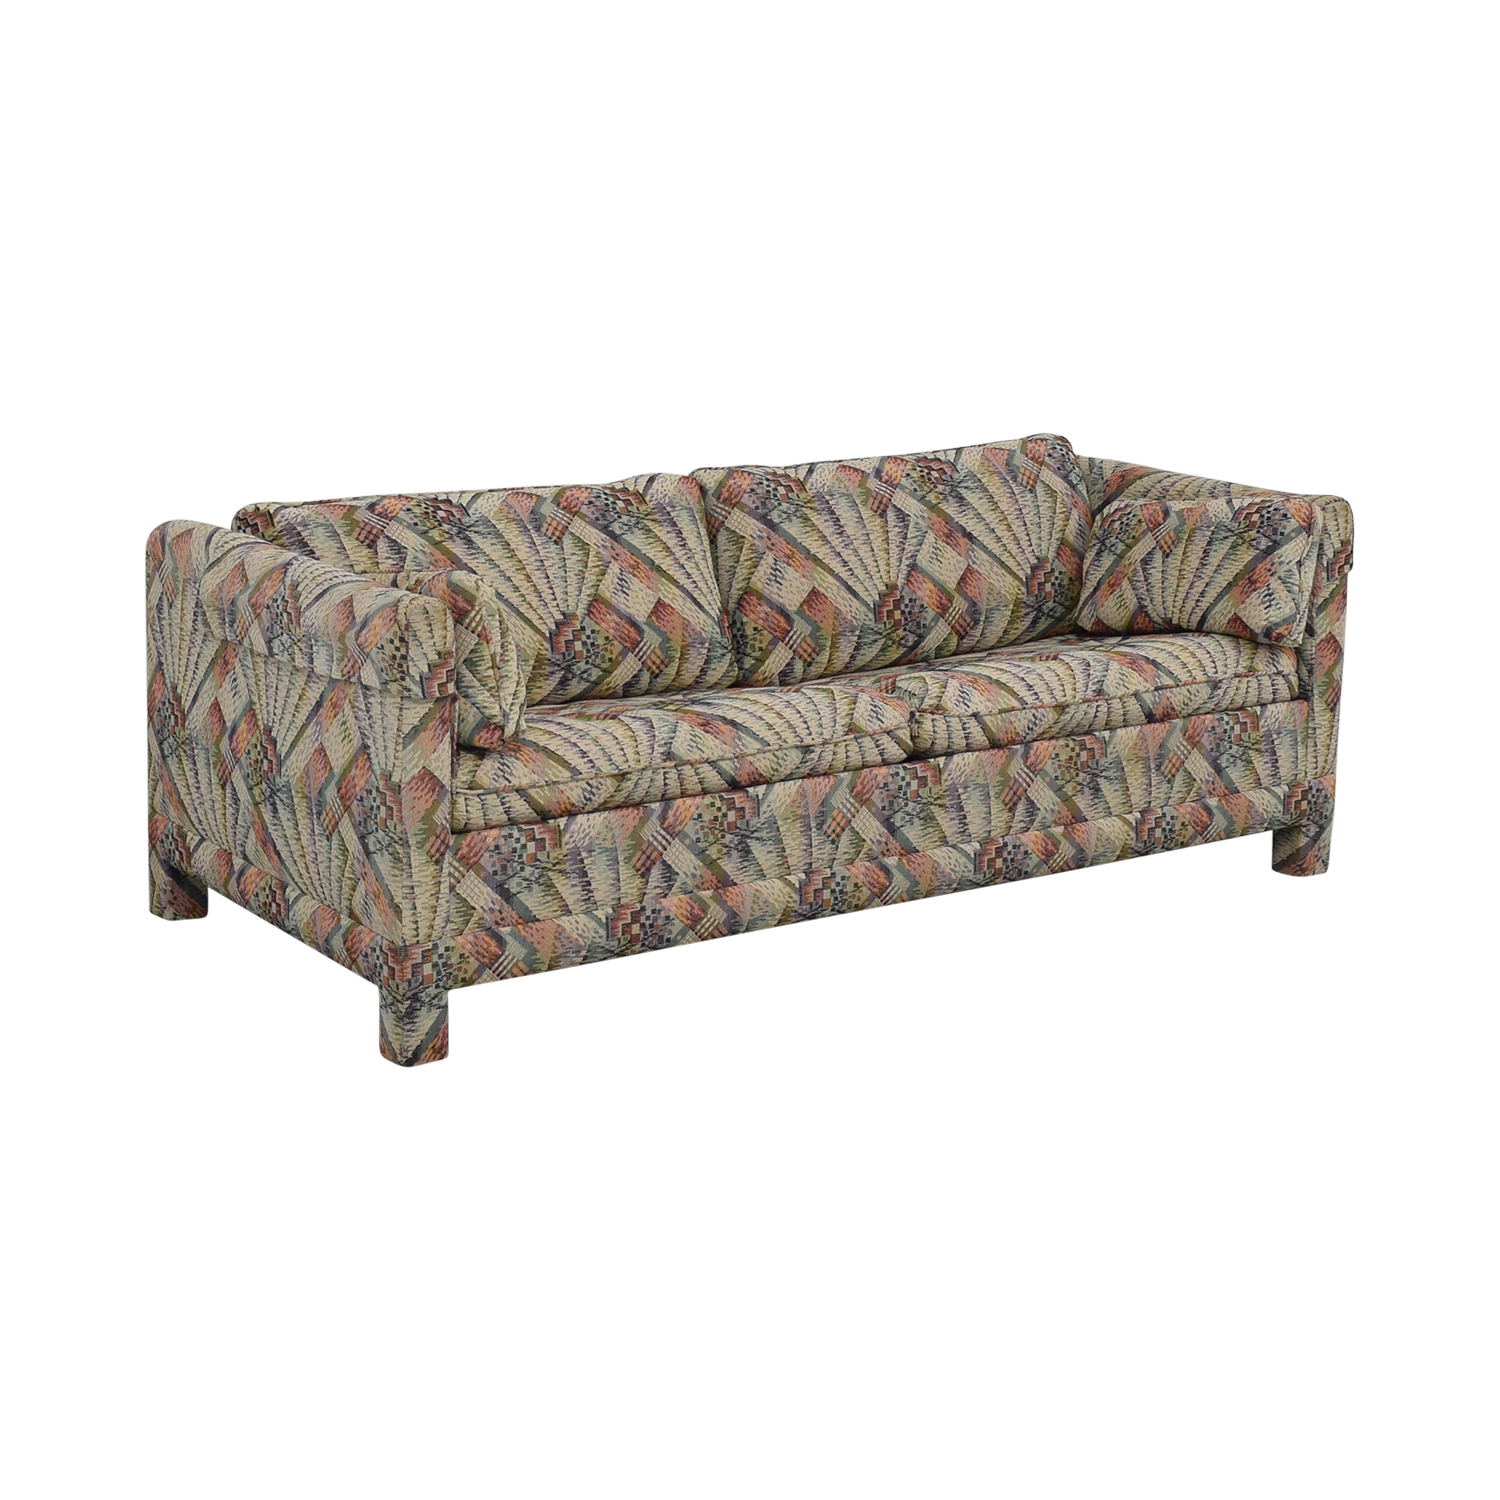 Mittman Patterned Queen Sleeper Sofa sale